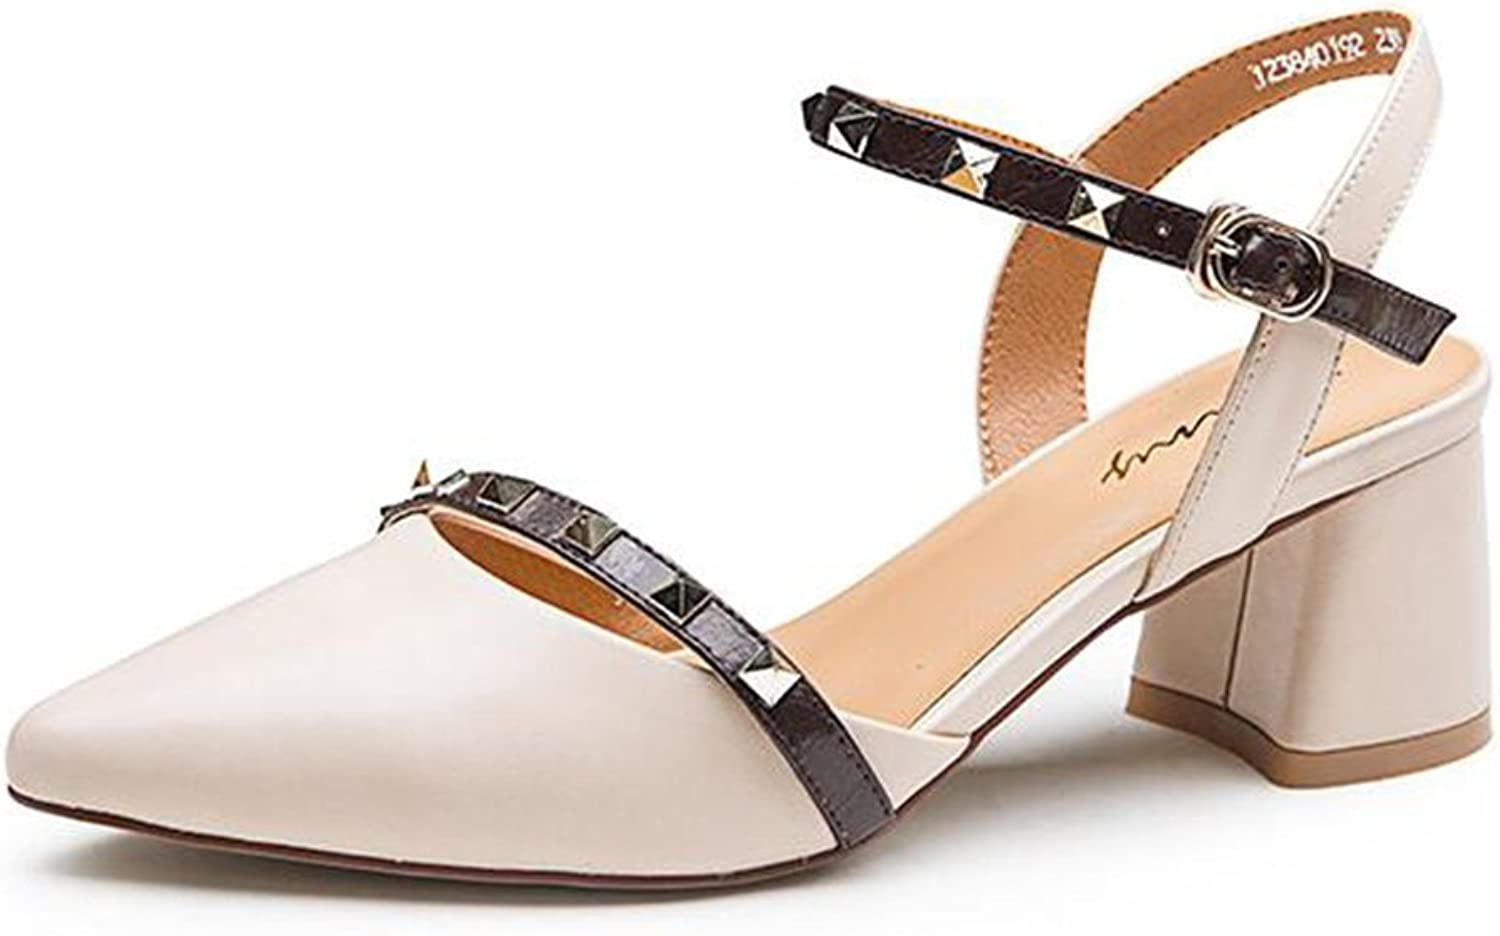 Thick with Sandals Female Summer Wild Rivet Buckle Belt shoes Pointed Commuter High Heel Sandals Female